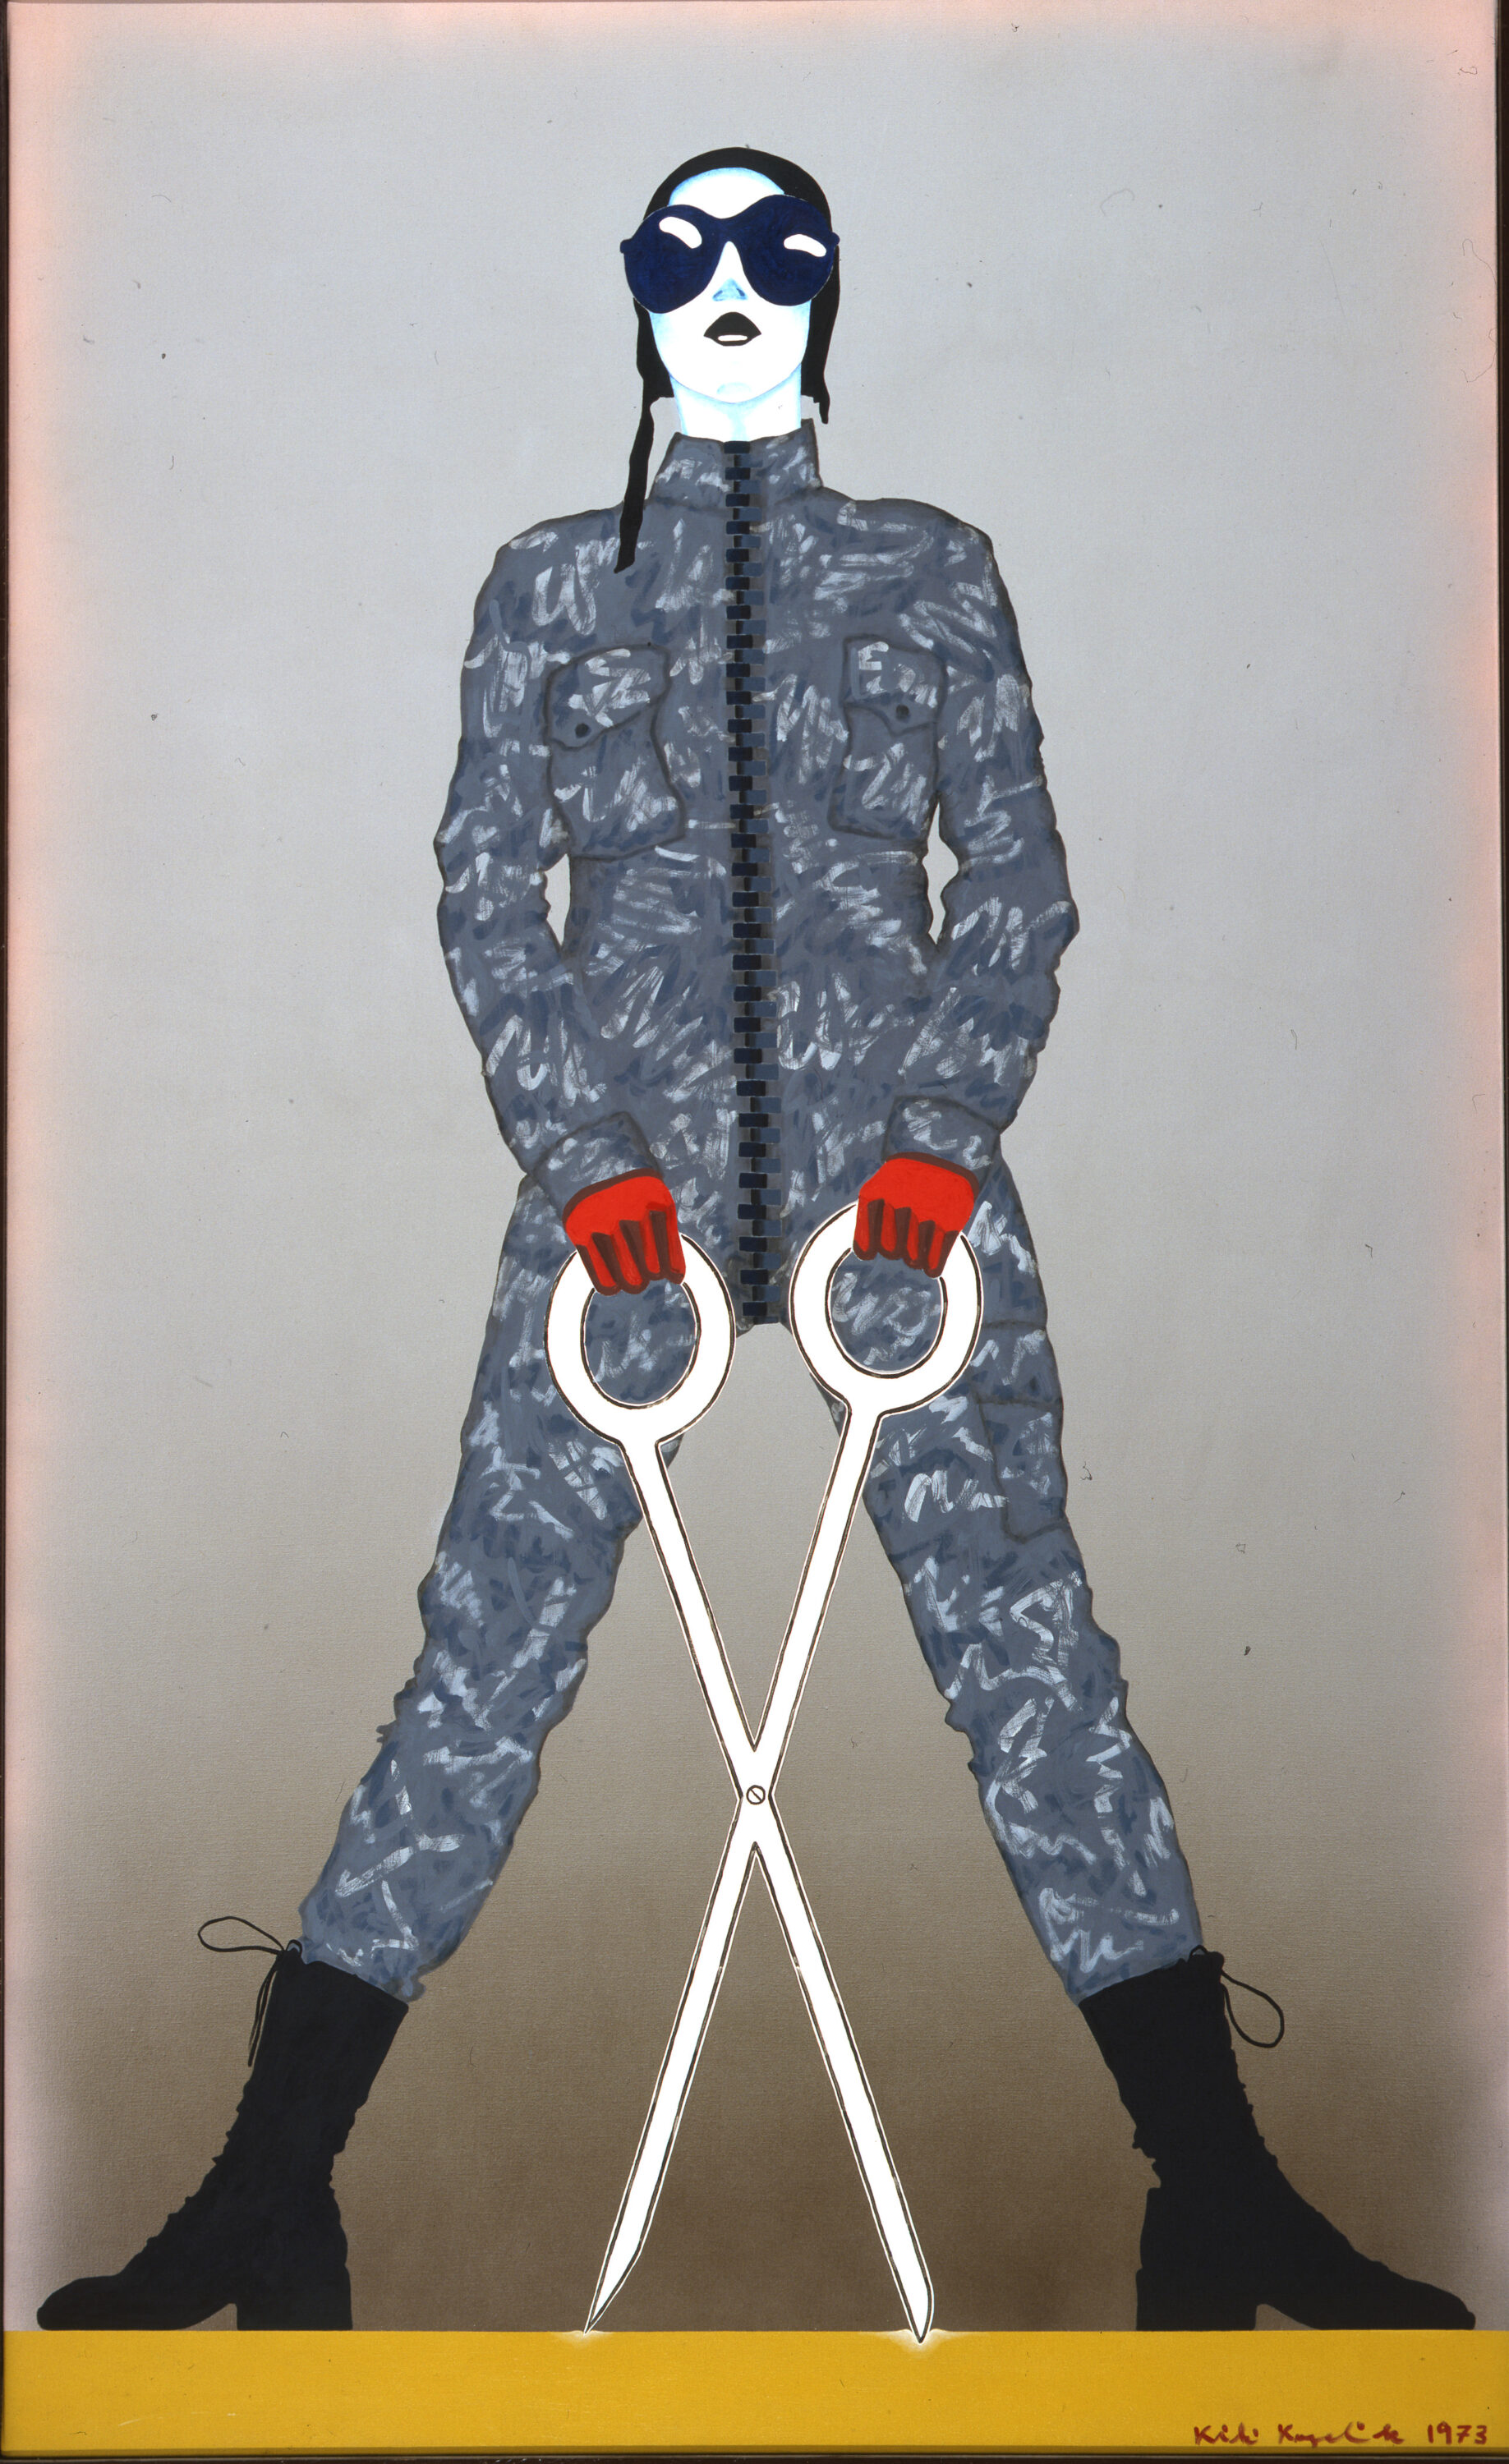 A monumental figure sports a gray camouflage jumpsuit, black army boots, red gloves, and an aviator cap with goggles. Legs splayed, the standing figure wields oversized, white scissors open in an X-shape. The linear style, bulbous eyewear, and cartoonish weapon evoke comic books.